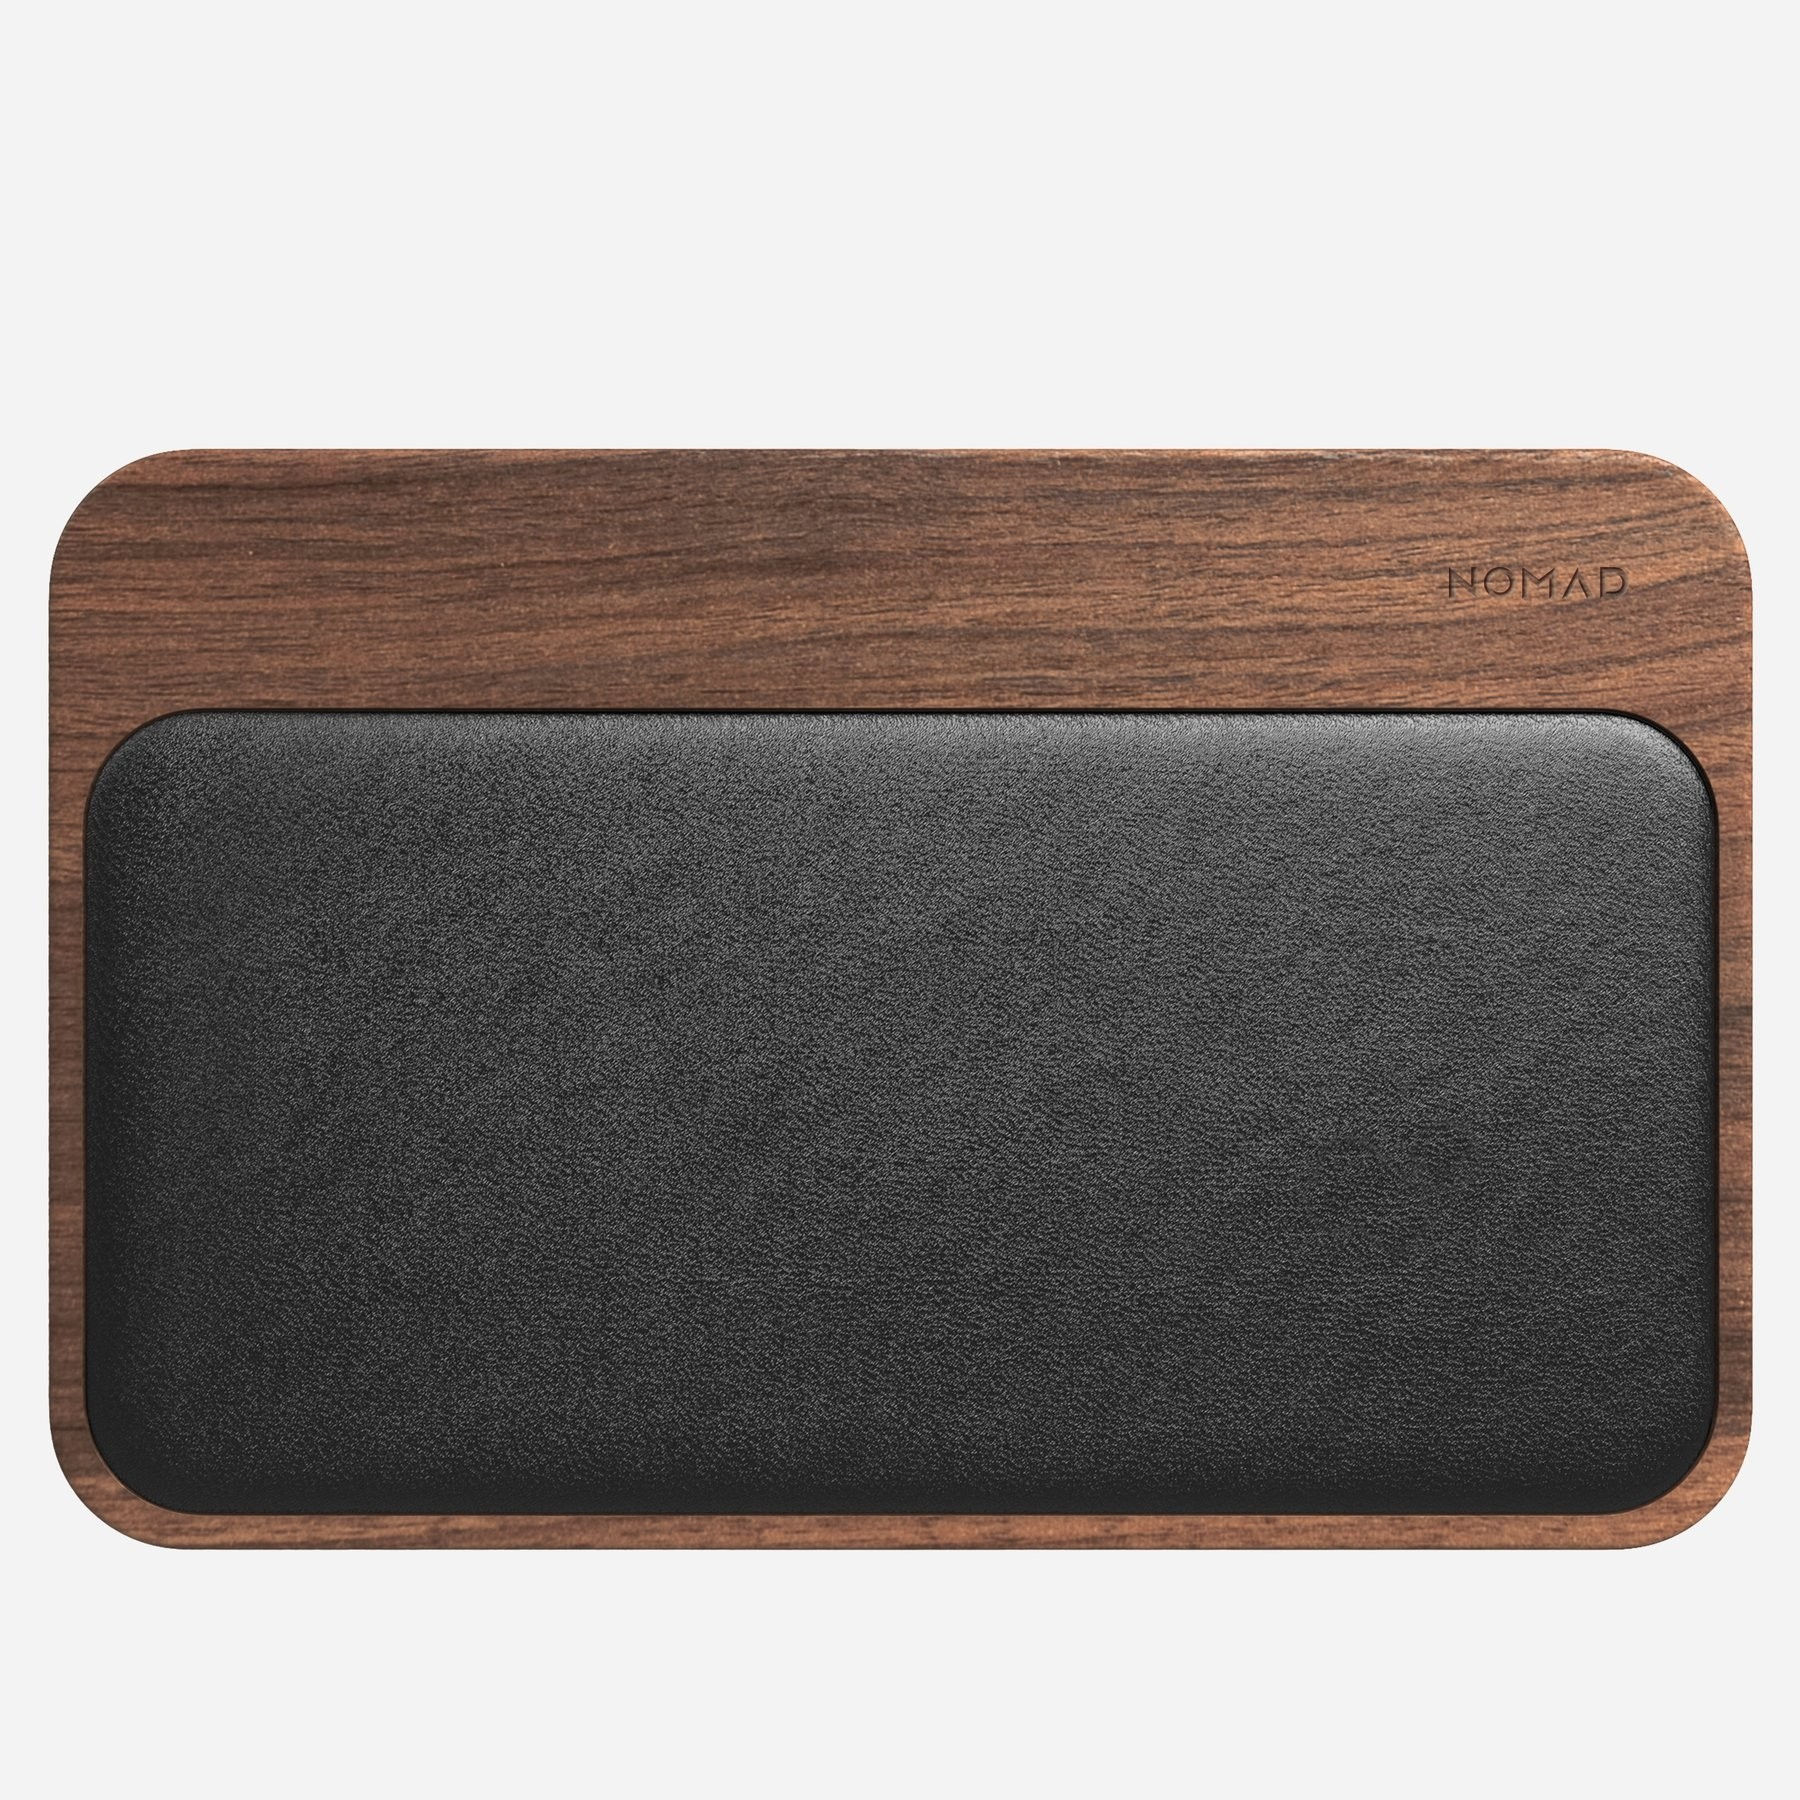 Nomad Base Station Charger - Walnut, NM300W4A00